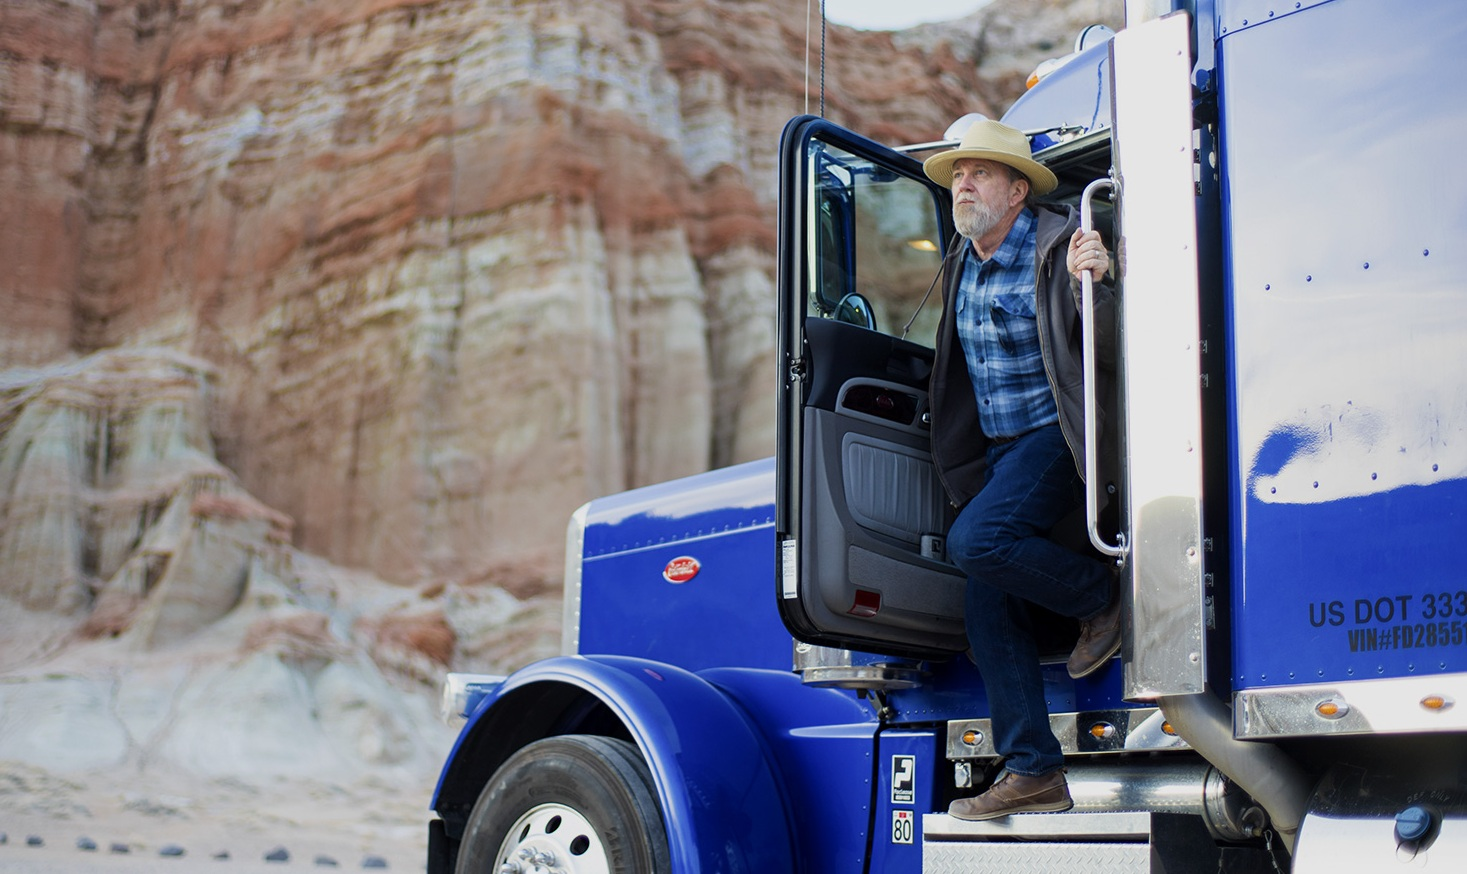 Keep on truckin': 5 companies disrupting the road freight